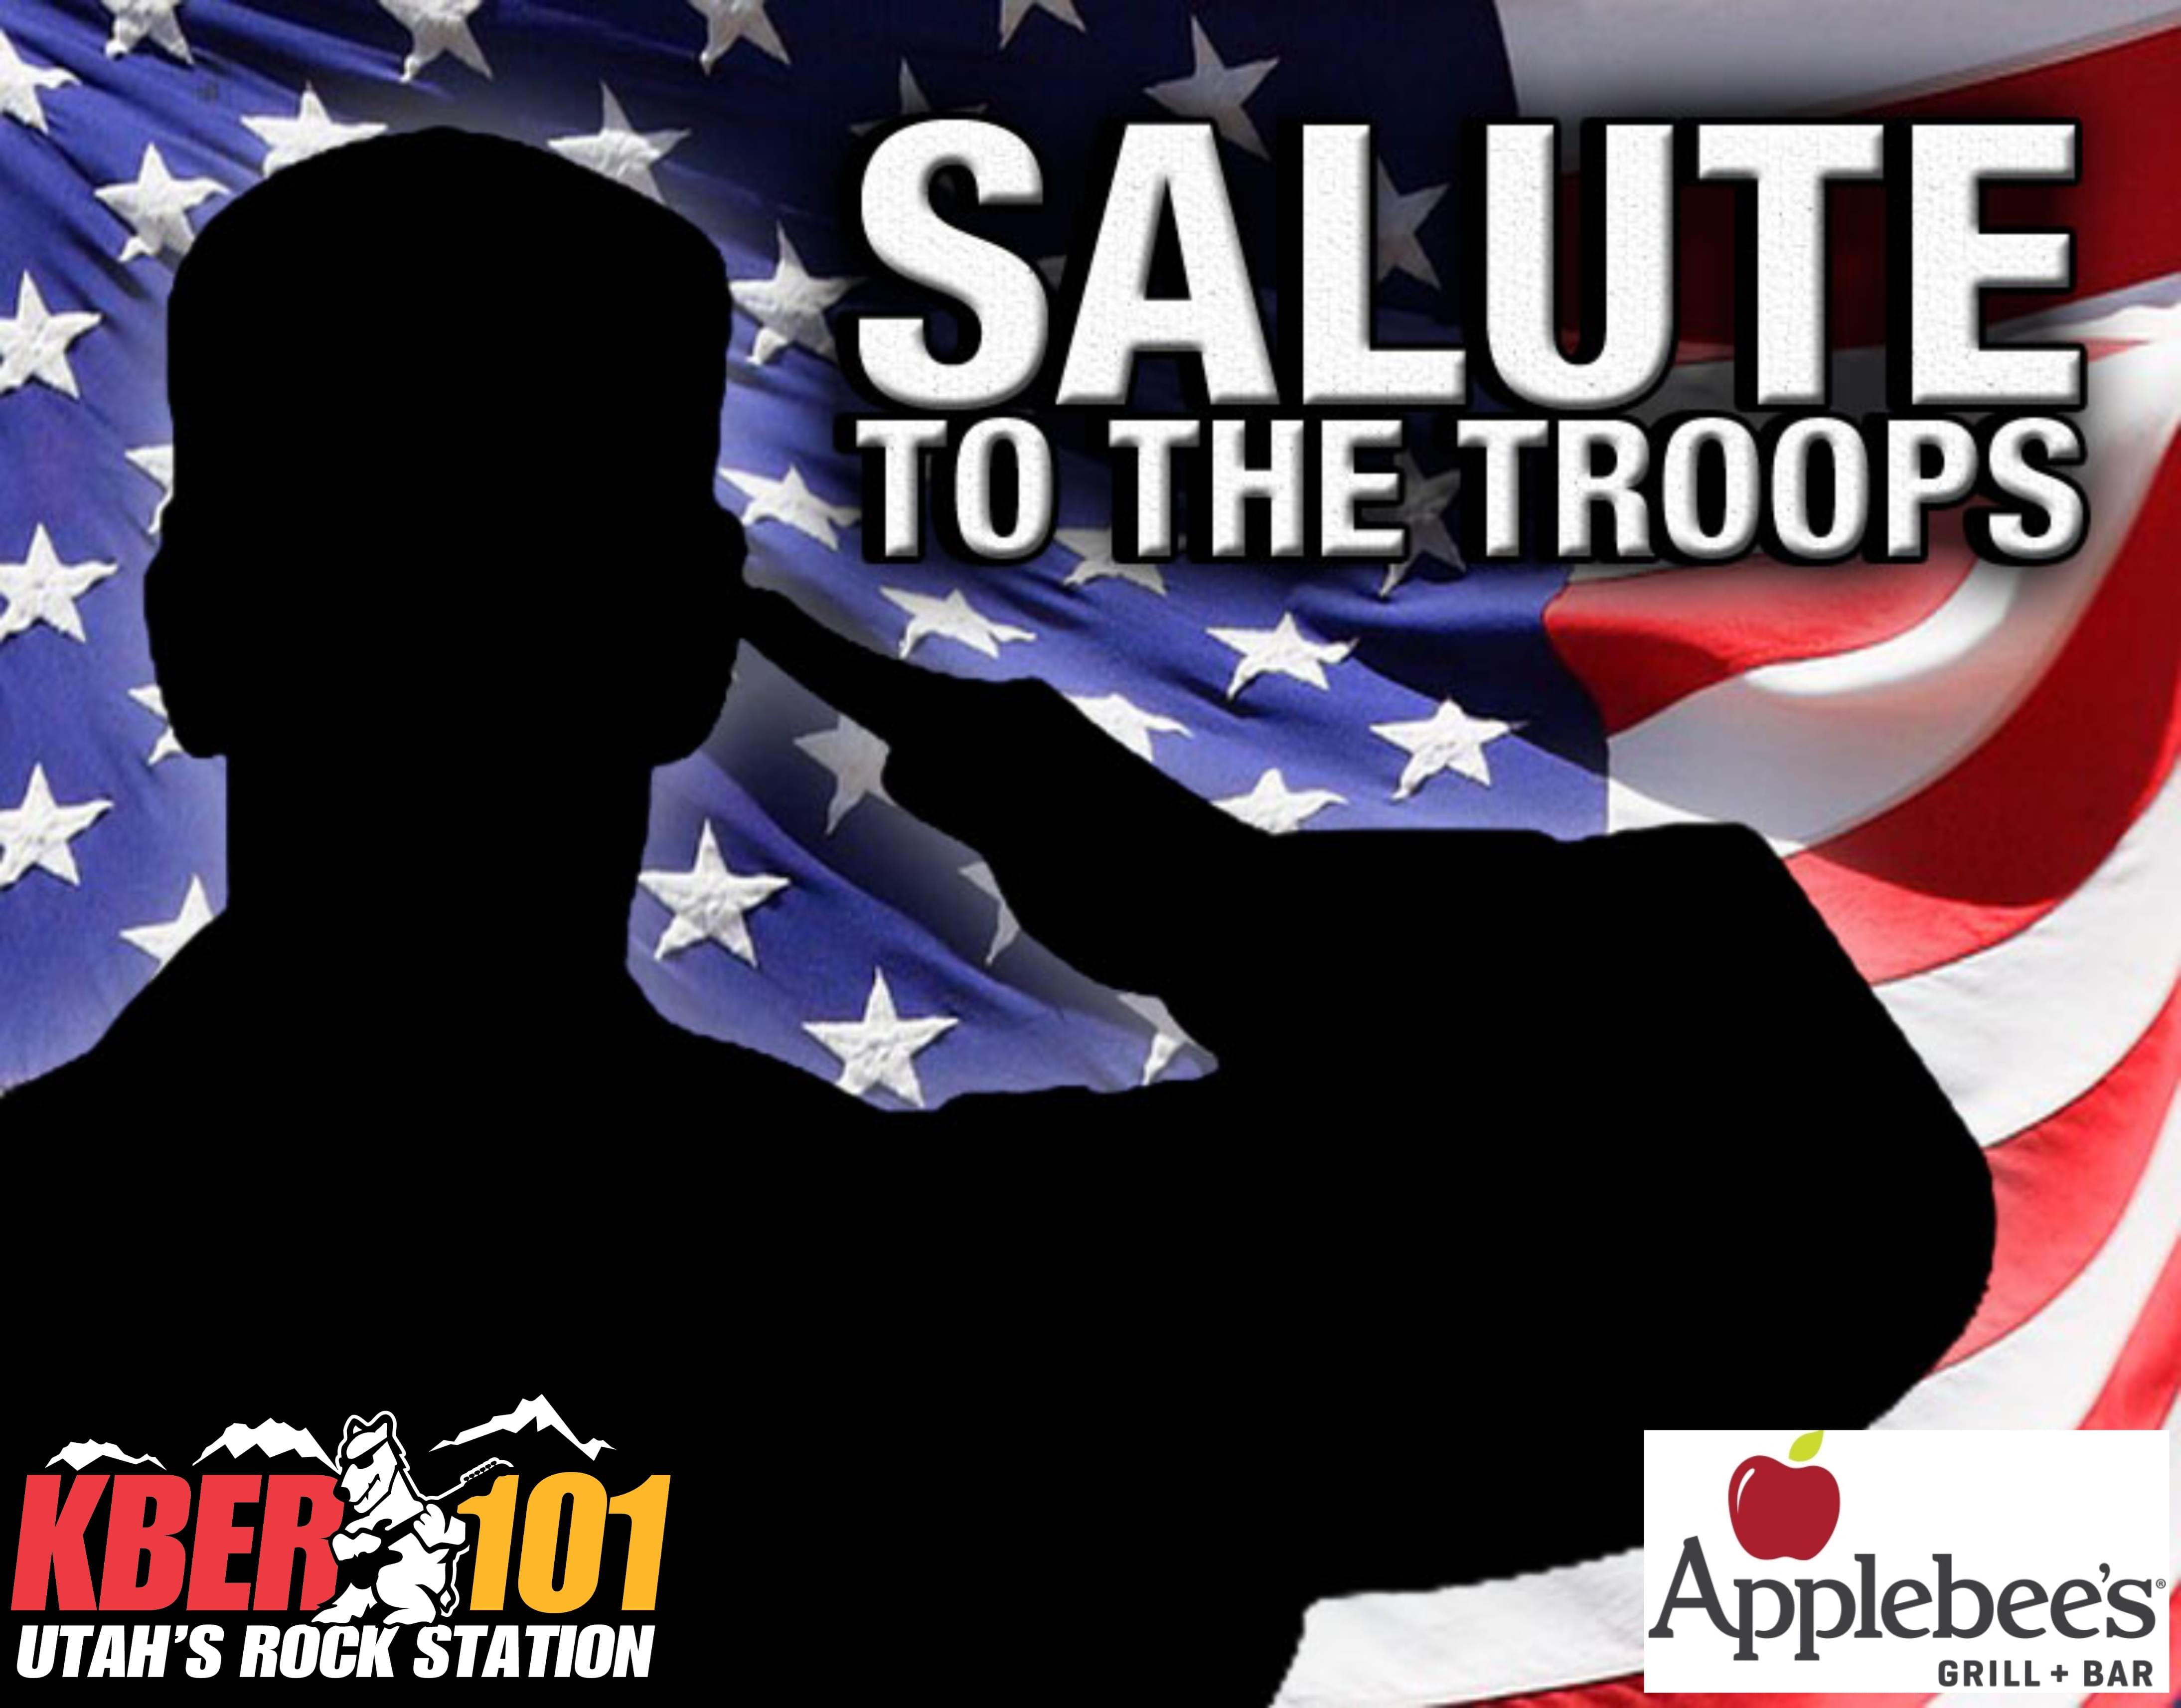 KBER 101 Salute To The Troops: Nominate Your Military Hero & You Might Win Gift Card to Applebee's